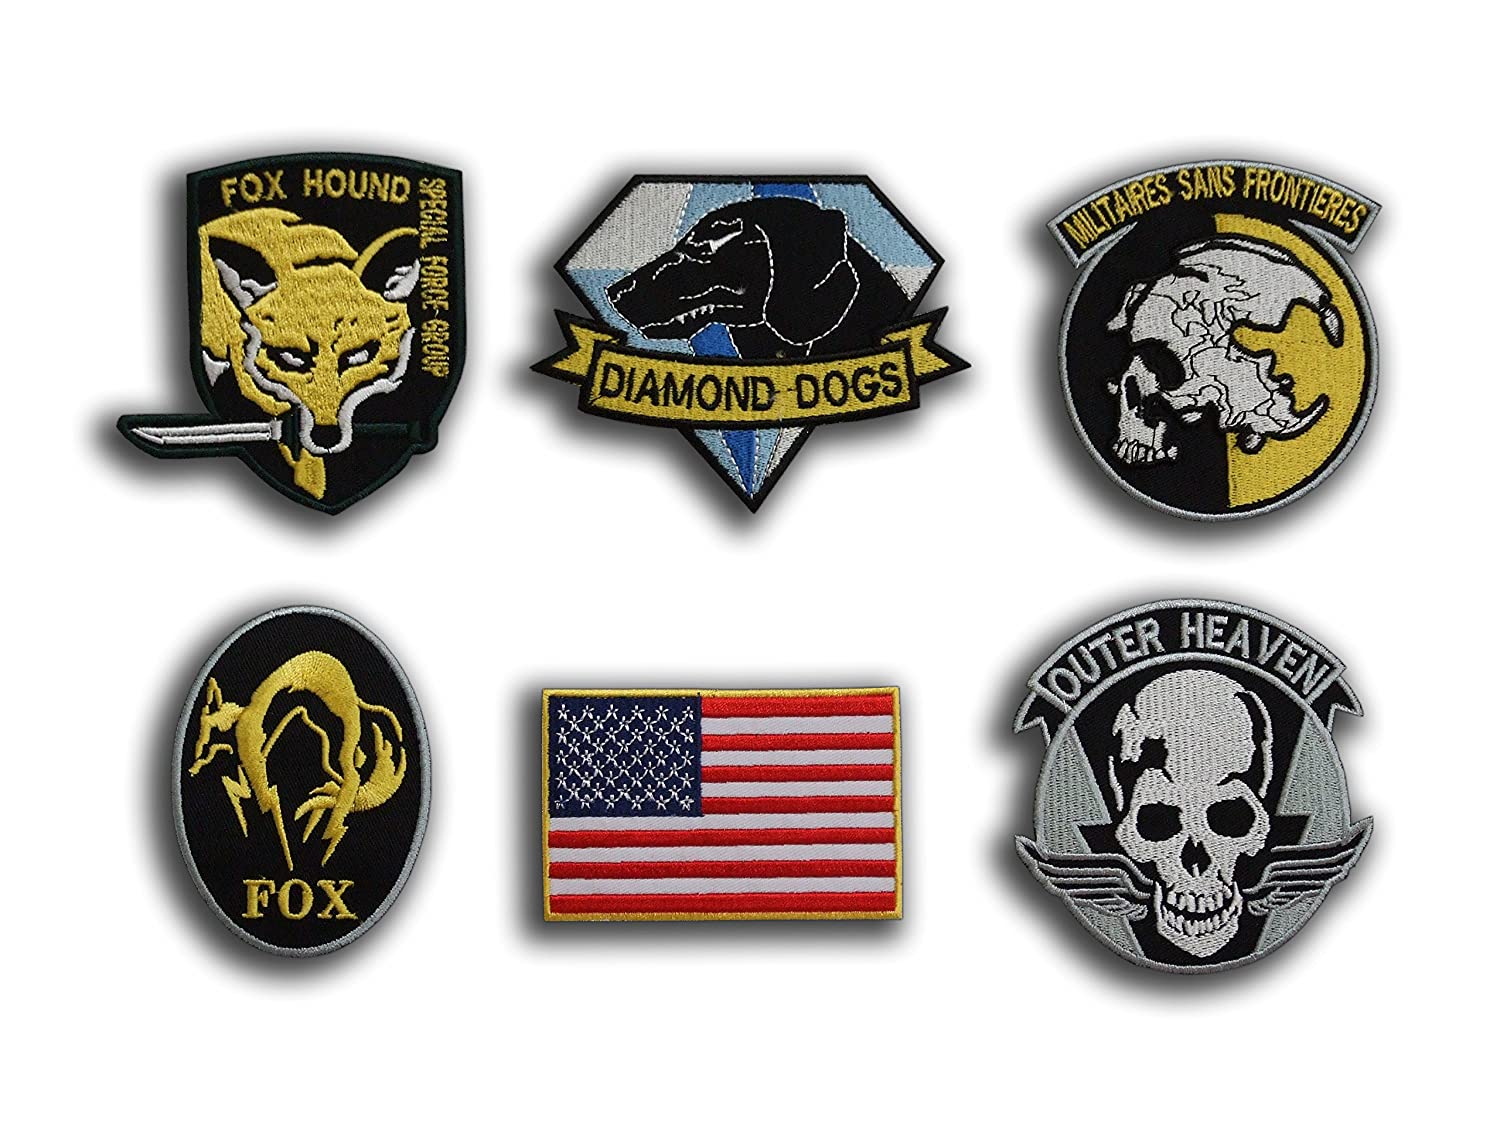 Badges Apparel Sewing & Fabric 1 Pc Mgs Metal Gear Solid Snake Badges To Let The World Be Morale Tactics 3d Pvc Badge